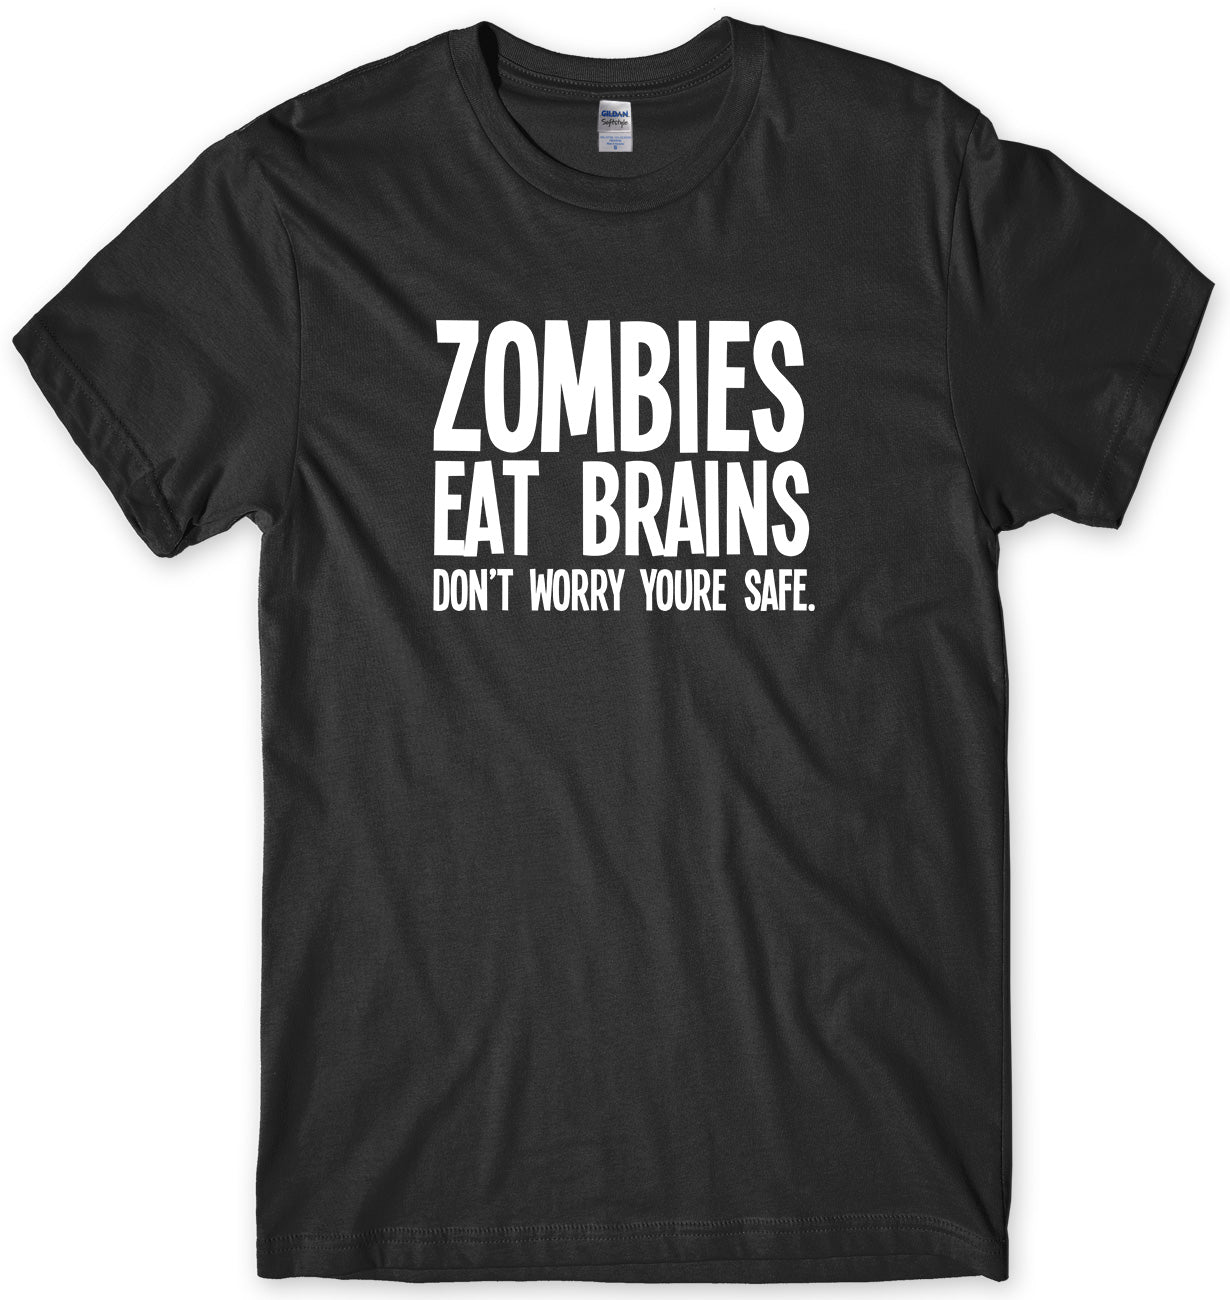 ZOMBIES EAT BRAINS DON'T WORRY YOU'RE SAFE MENS FUNNY UNISEX T-SHIRT